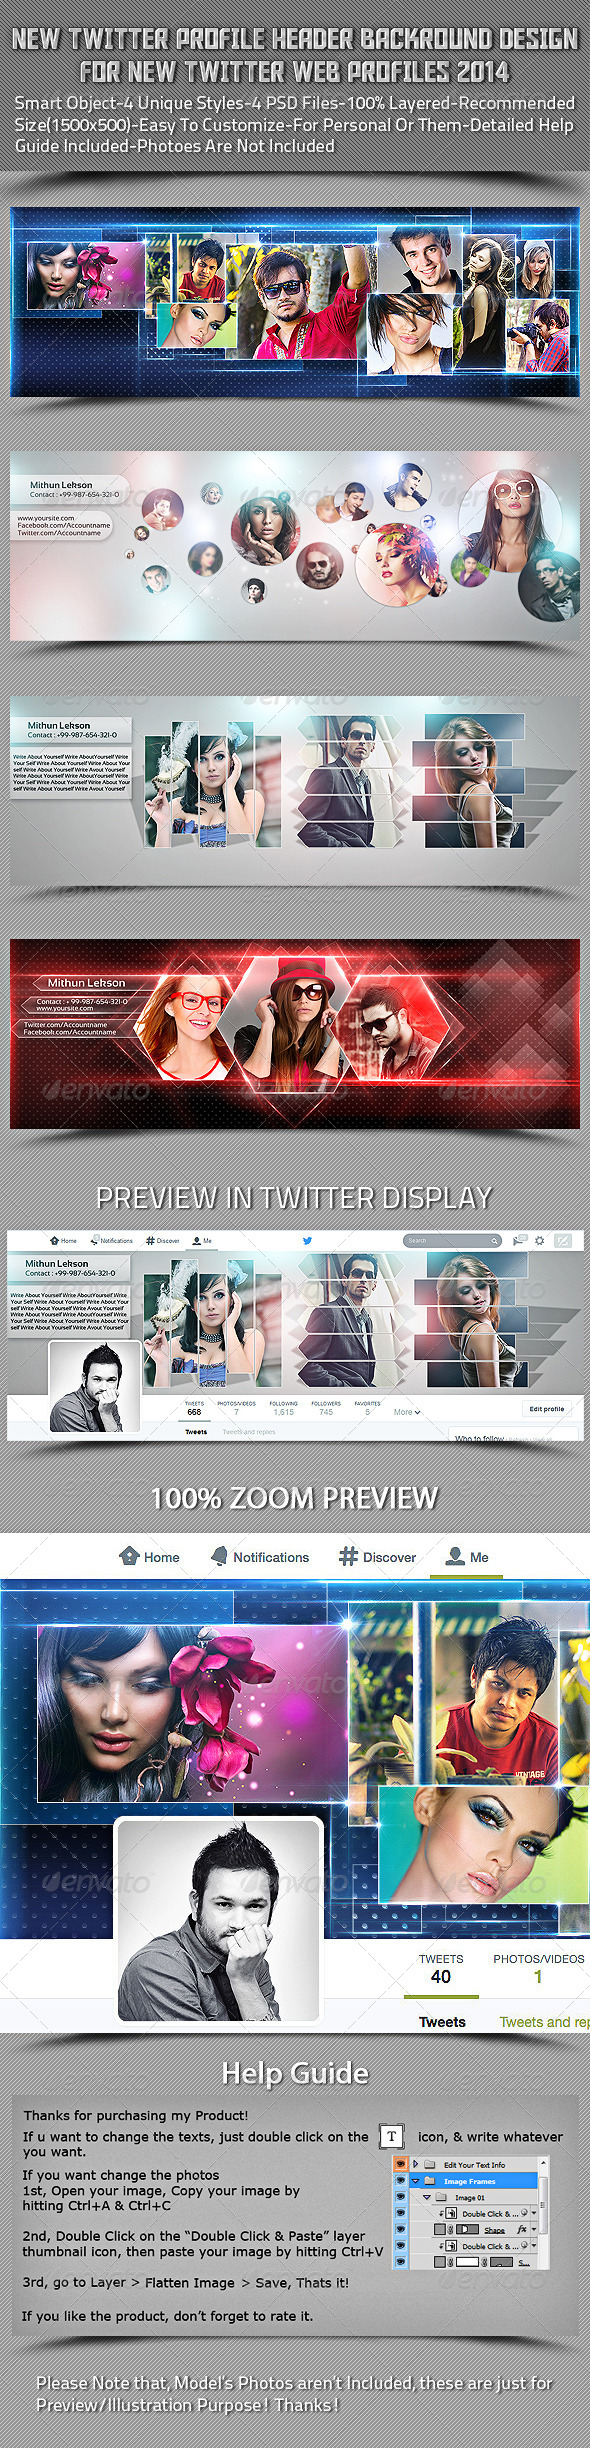 GraphicRiver New Twitter Profile Header Backround Design 7640288